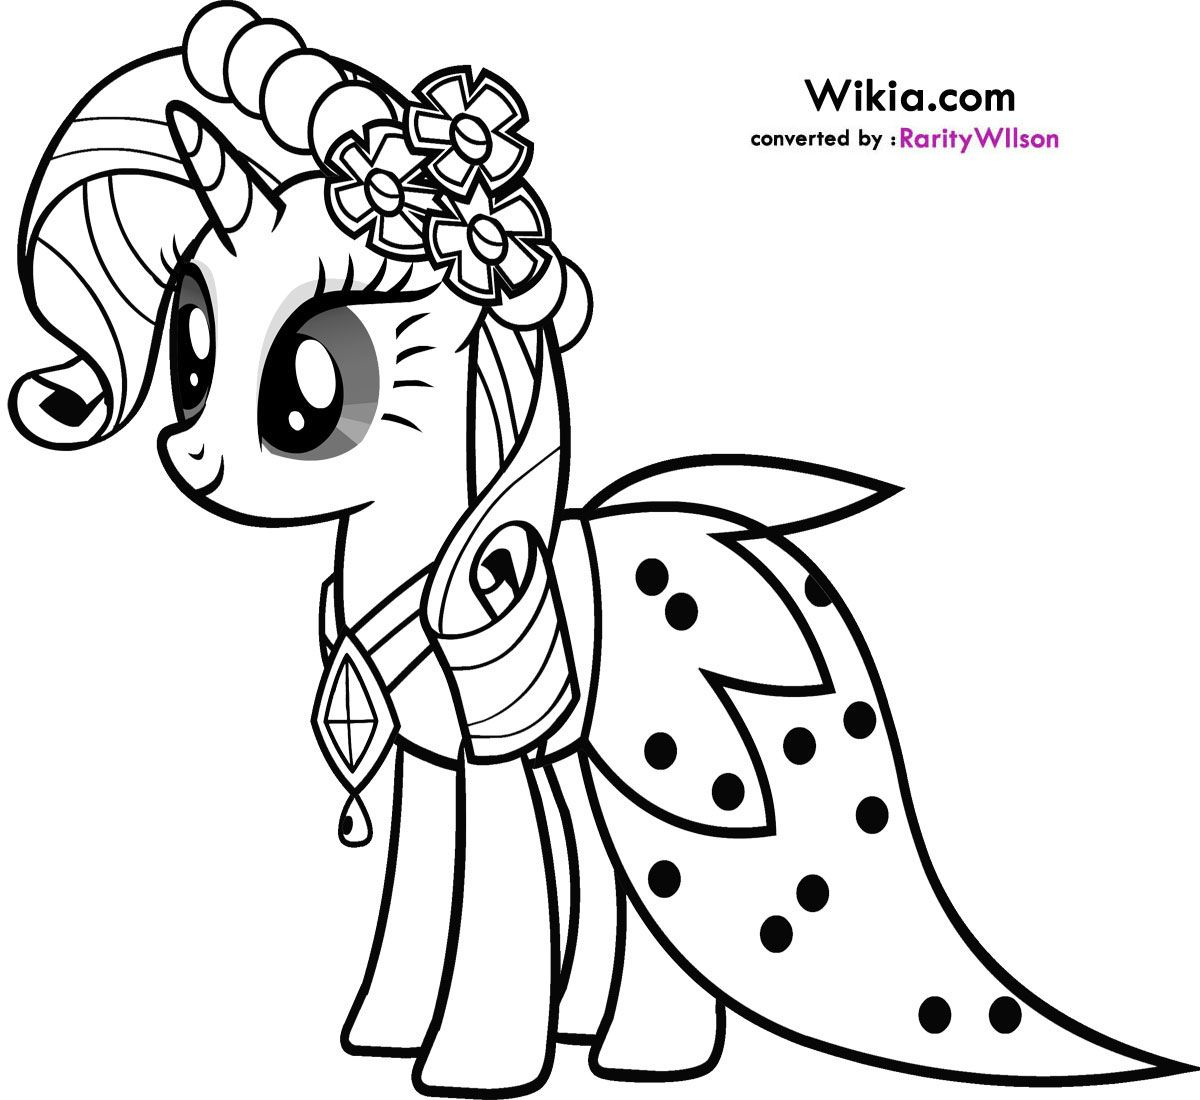 Adult Cute My Pretty Pony Coloring Pages Gallery Images best my little pony games coloring pages in color 1000 images about and rainbow dash images